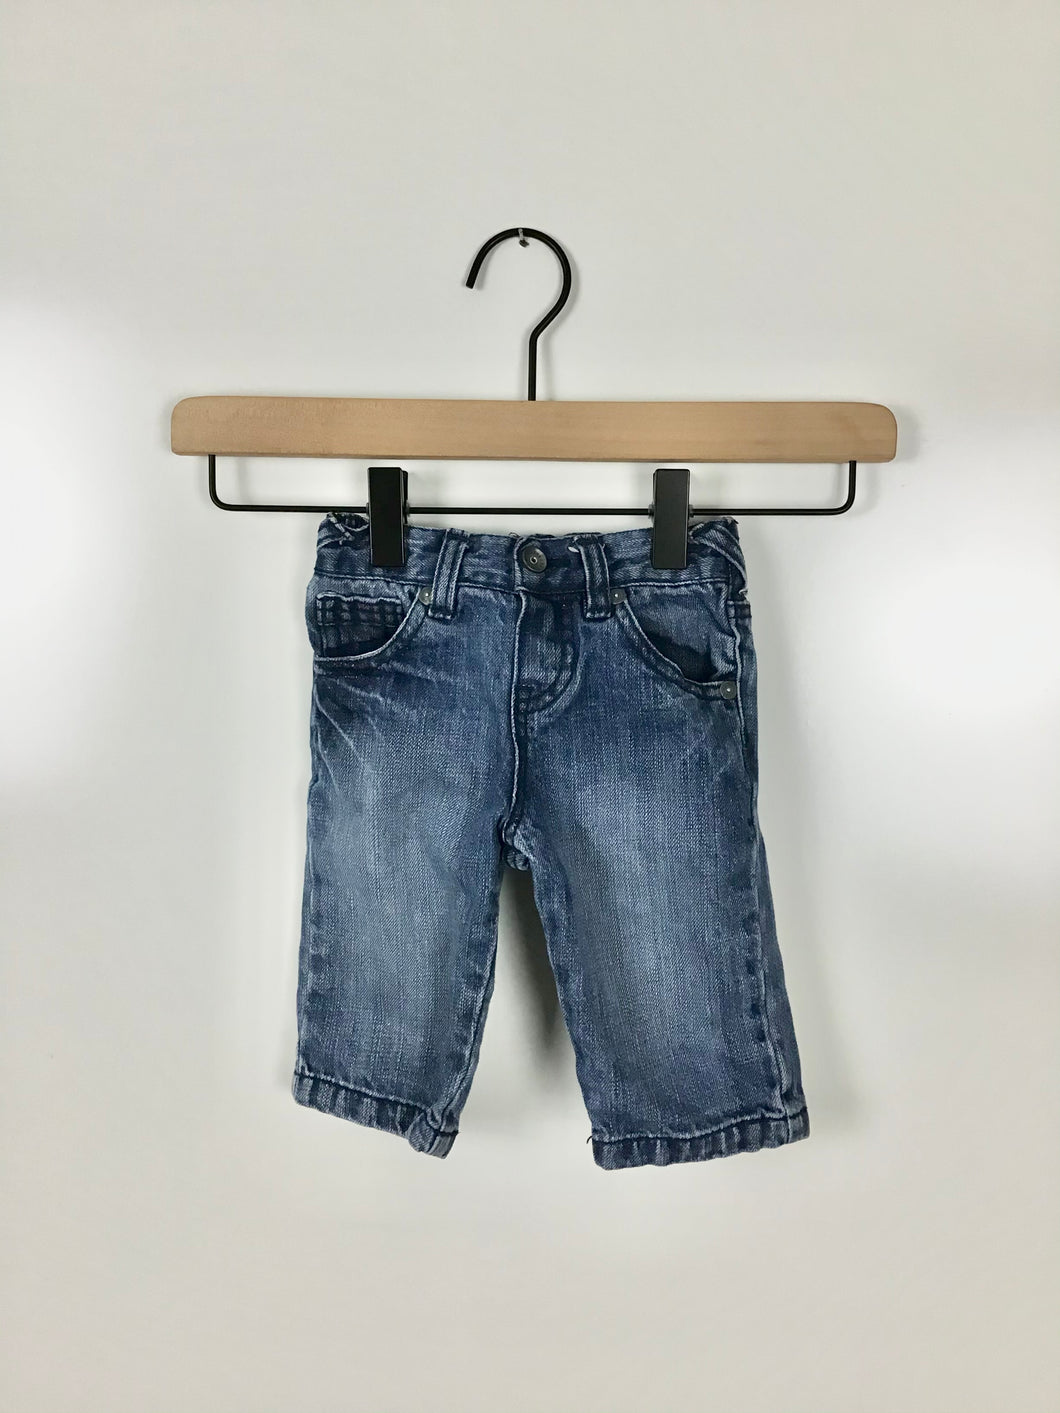 Guess jeans size 3-6 months